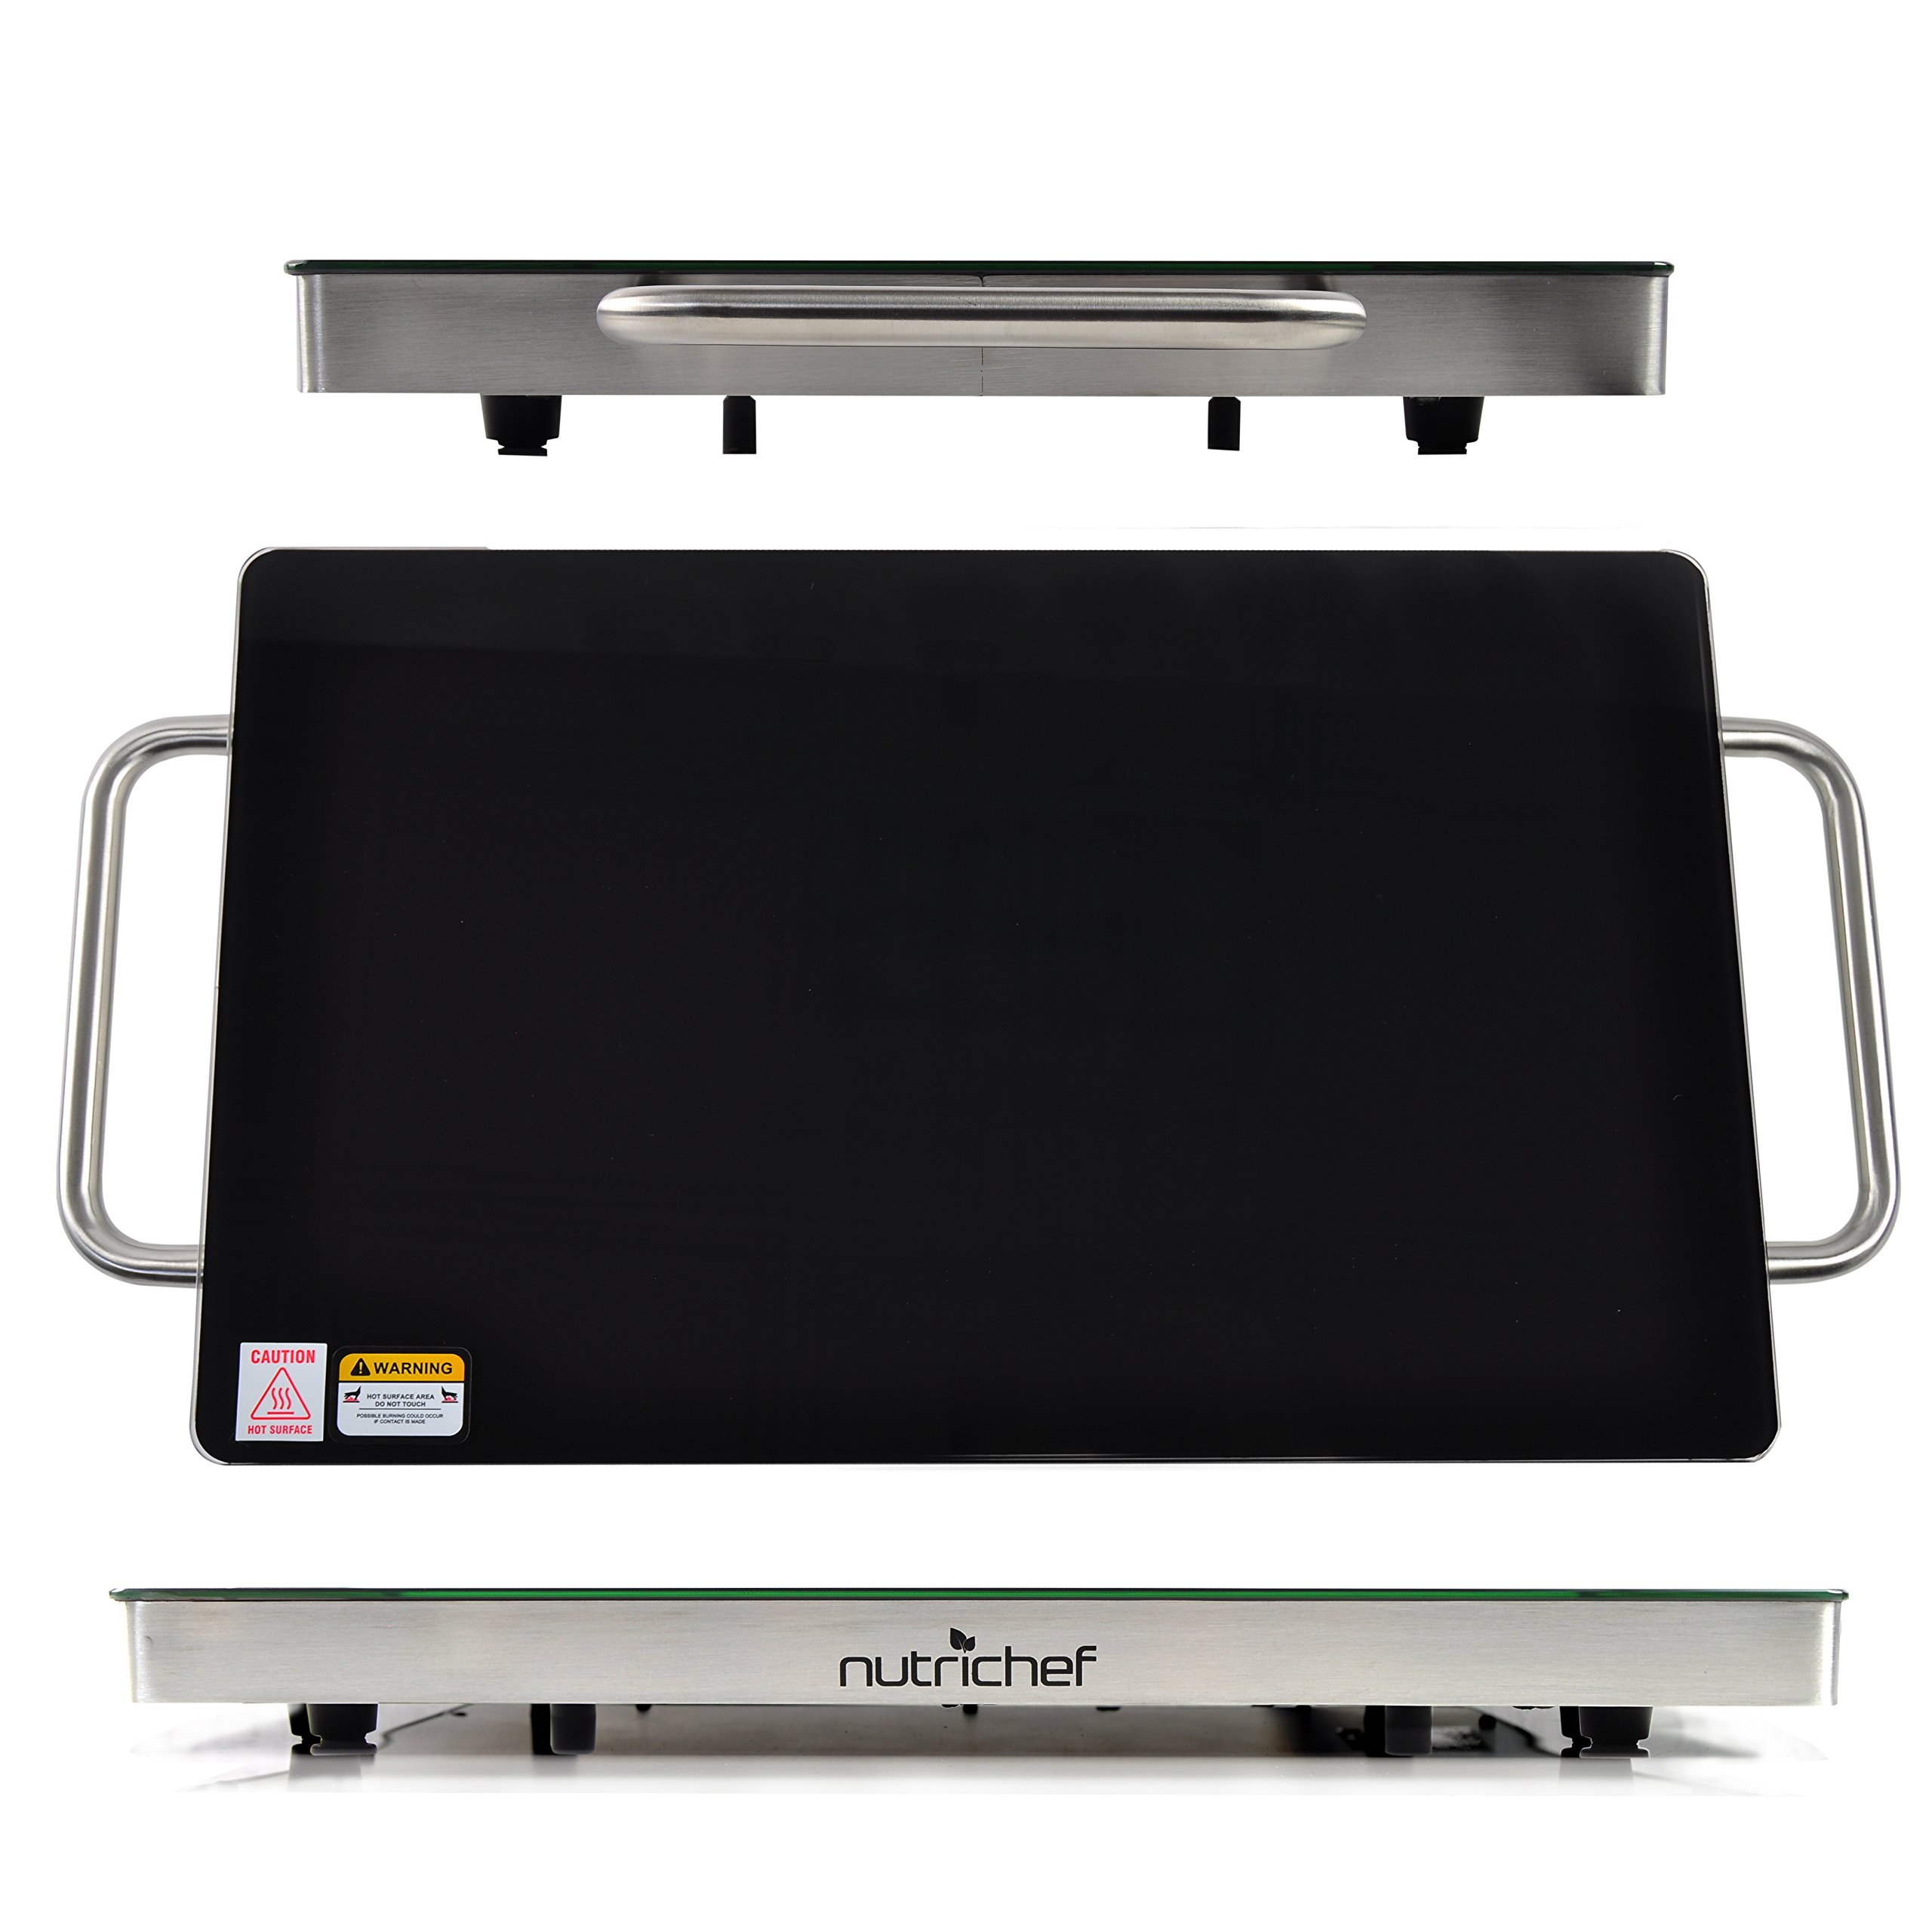 nutrichef electric warming tray food warmer hot plate. Black Bedroom Furniture Sets. Home Design Ideas